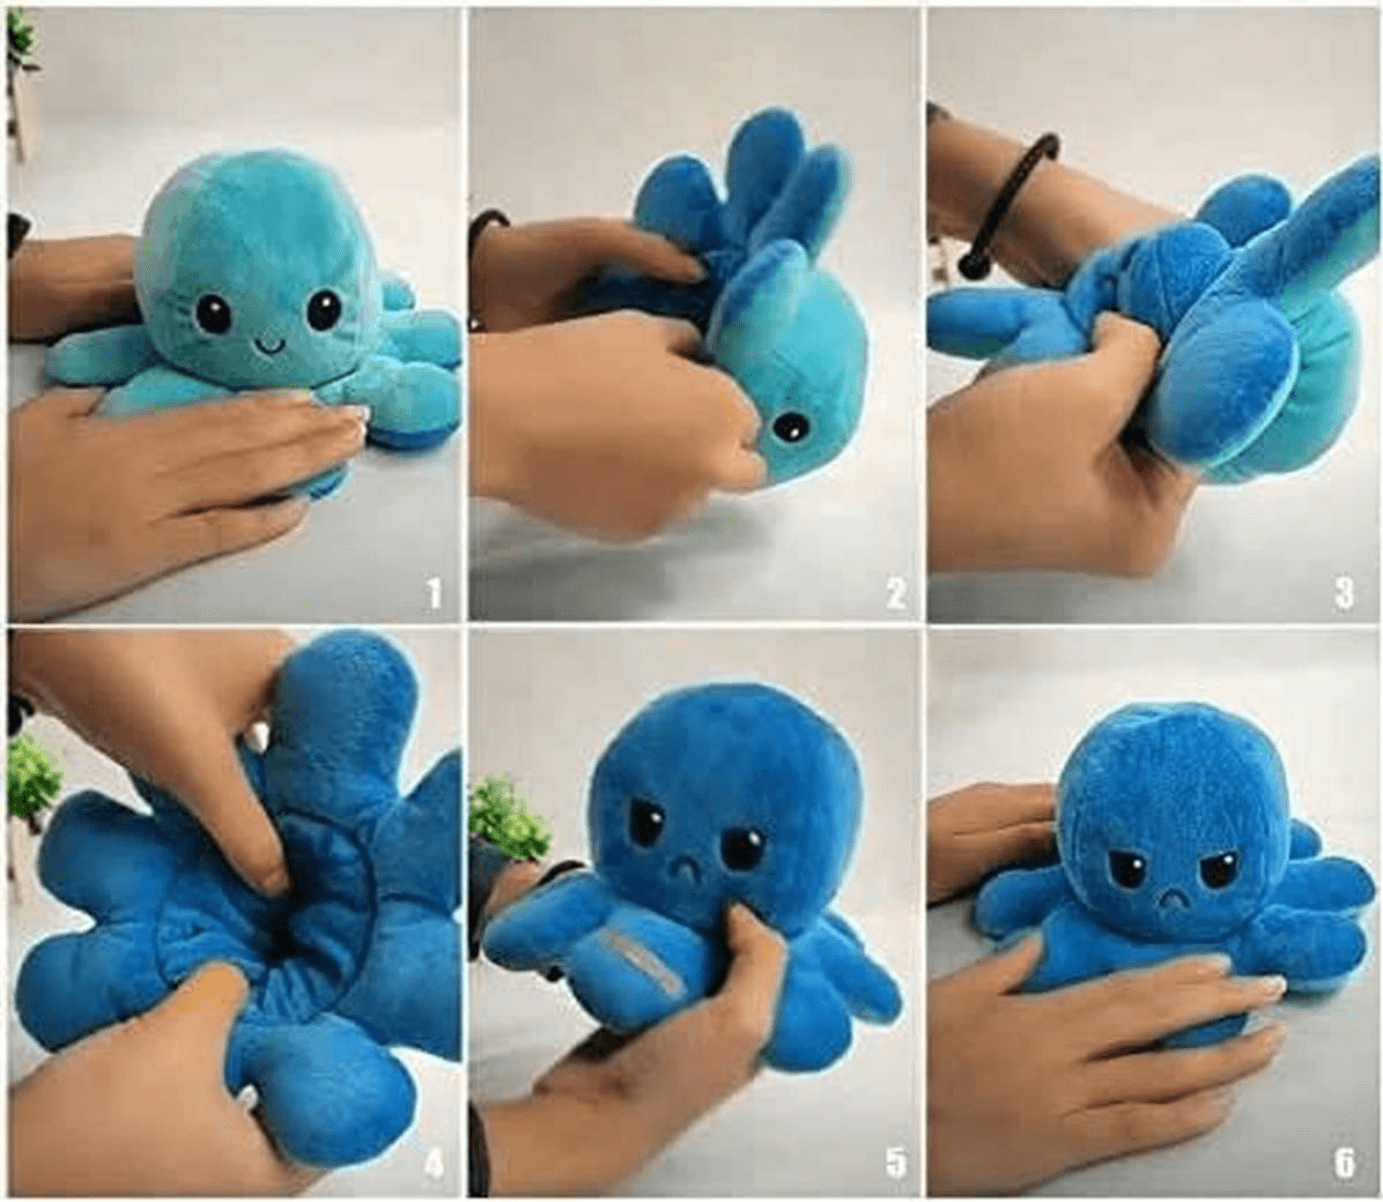 A tutorial to show how to flip the reversible octopus plush, in order to show his mood in Face content or not content. This plush is not to buy on Amazon, Ebay and has nothing to do with jellyfish.